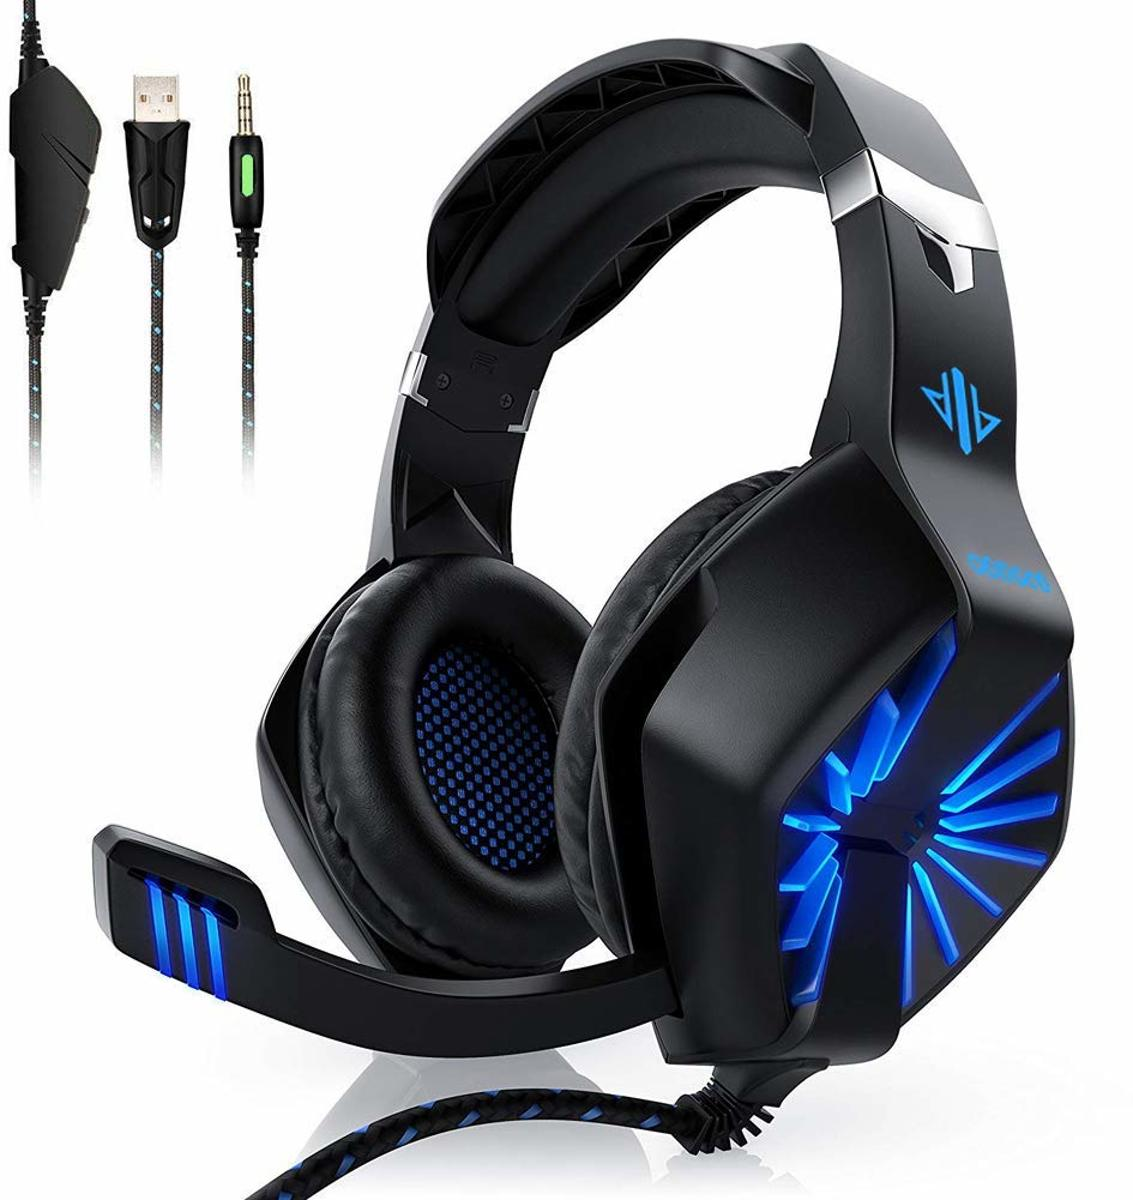 Gaming Headset - Headphone PC/ Playstation/ Xbox - Hoofdtelefoon met microfoon - LED verlichting